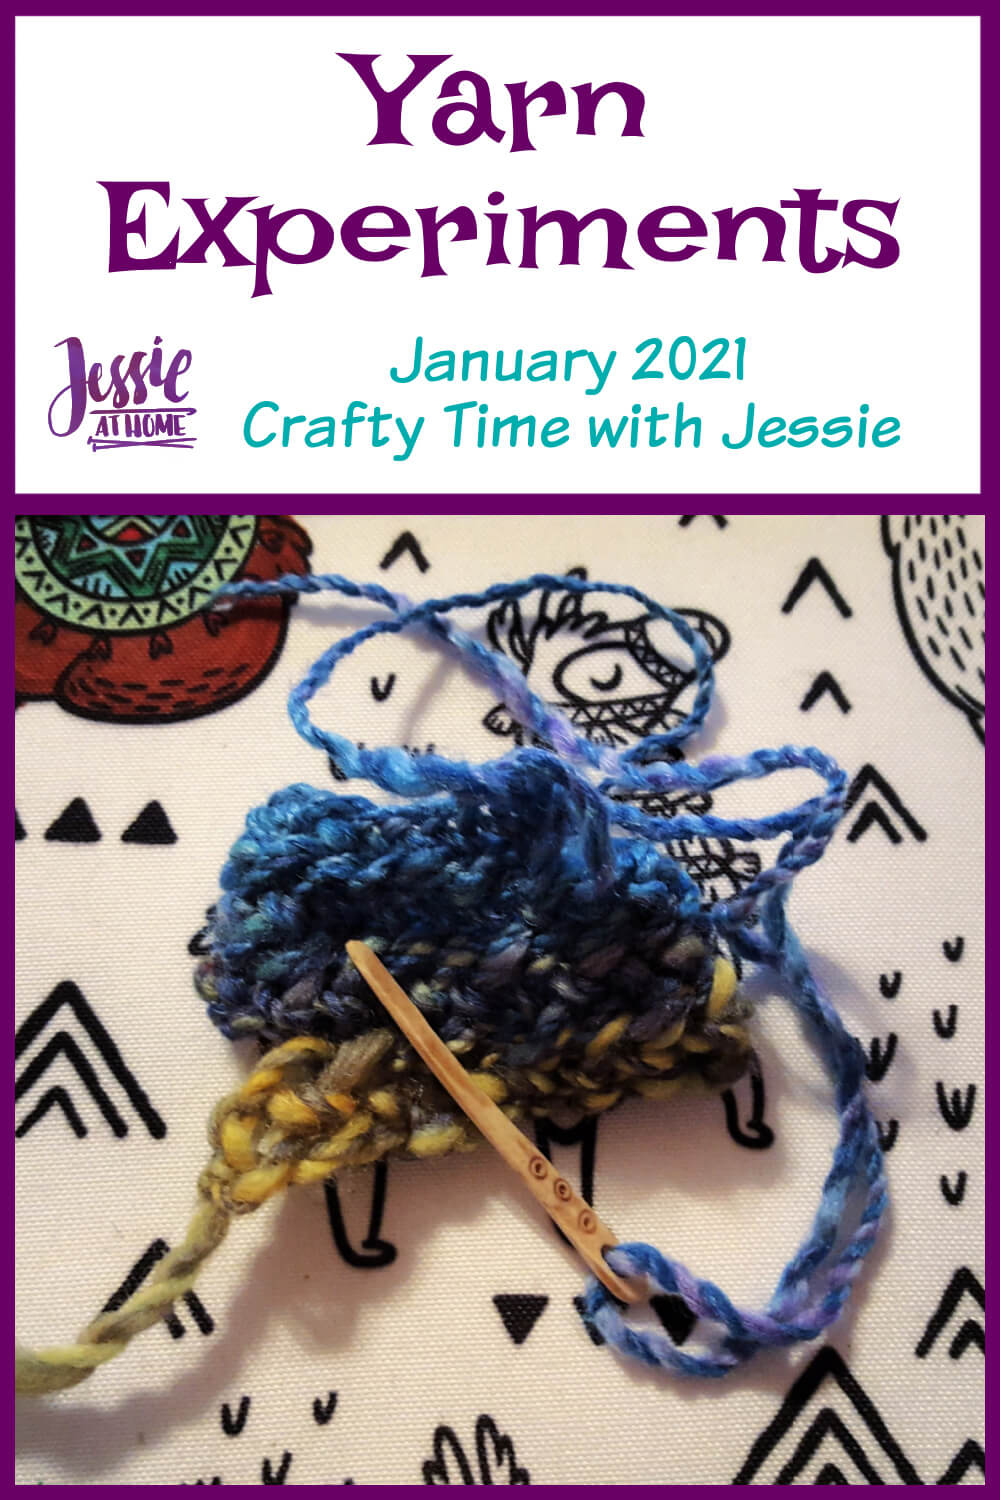 Yarn Experiments - January 2021 Crafty Time with Jessie